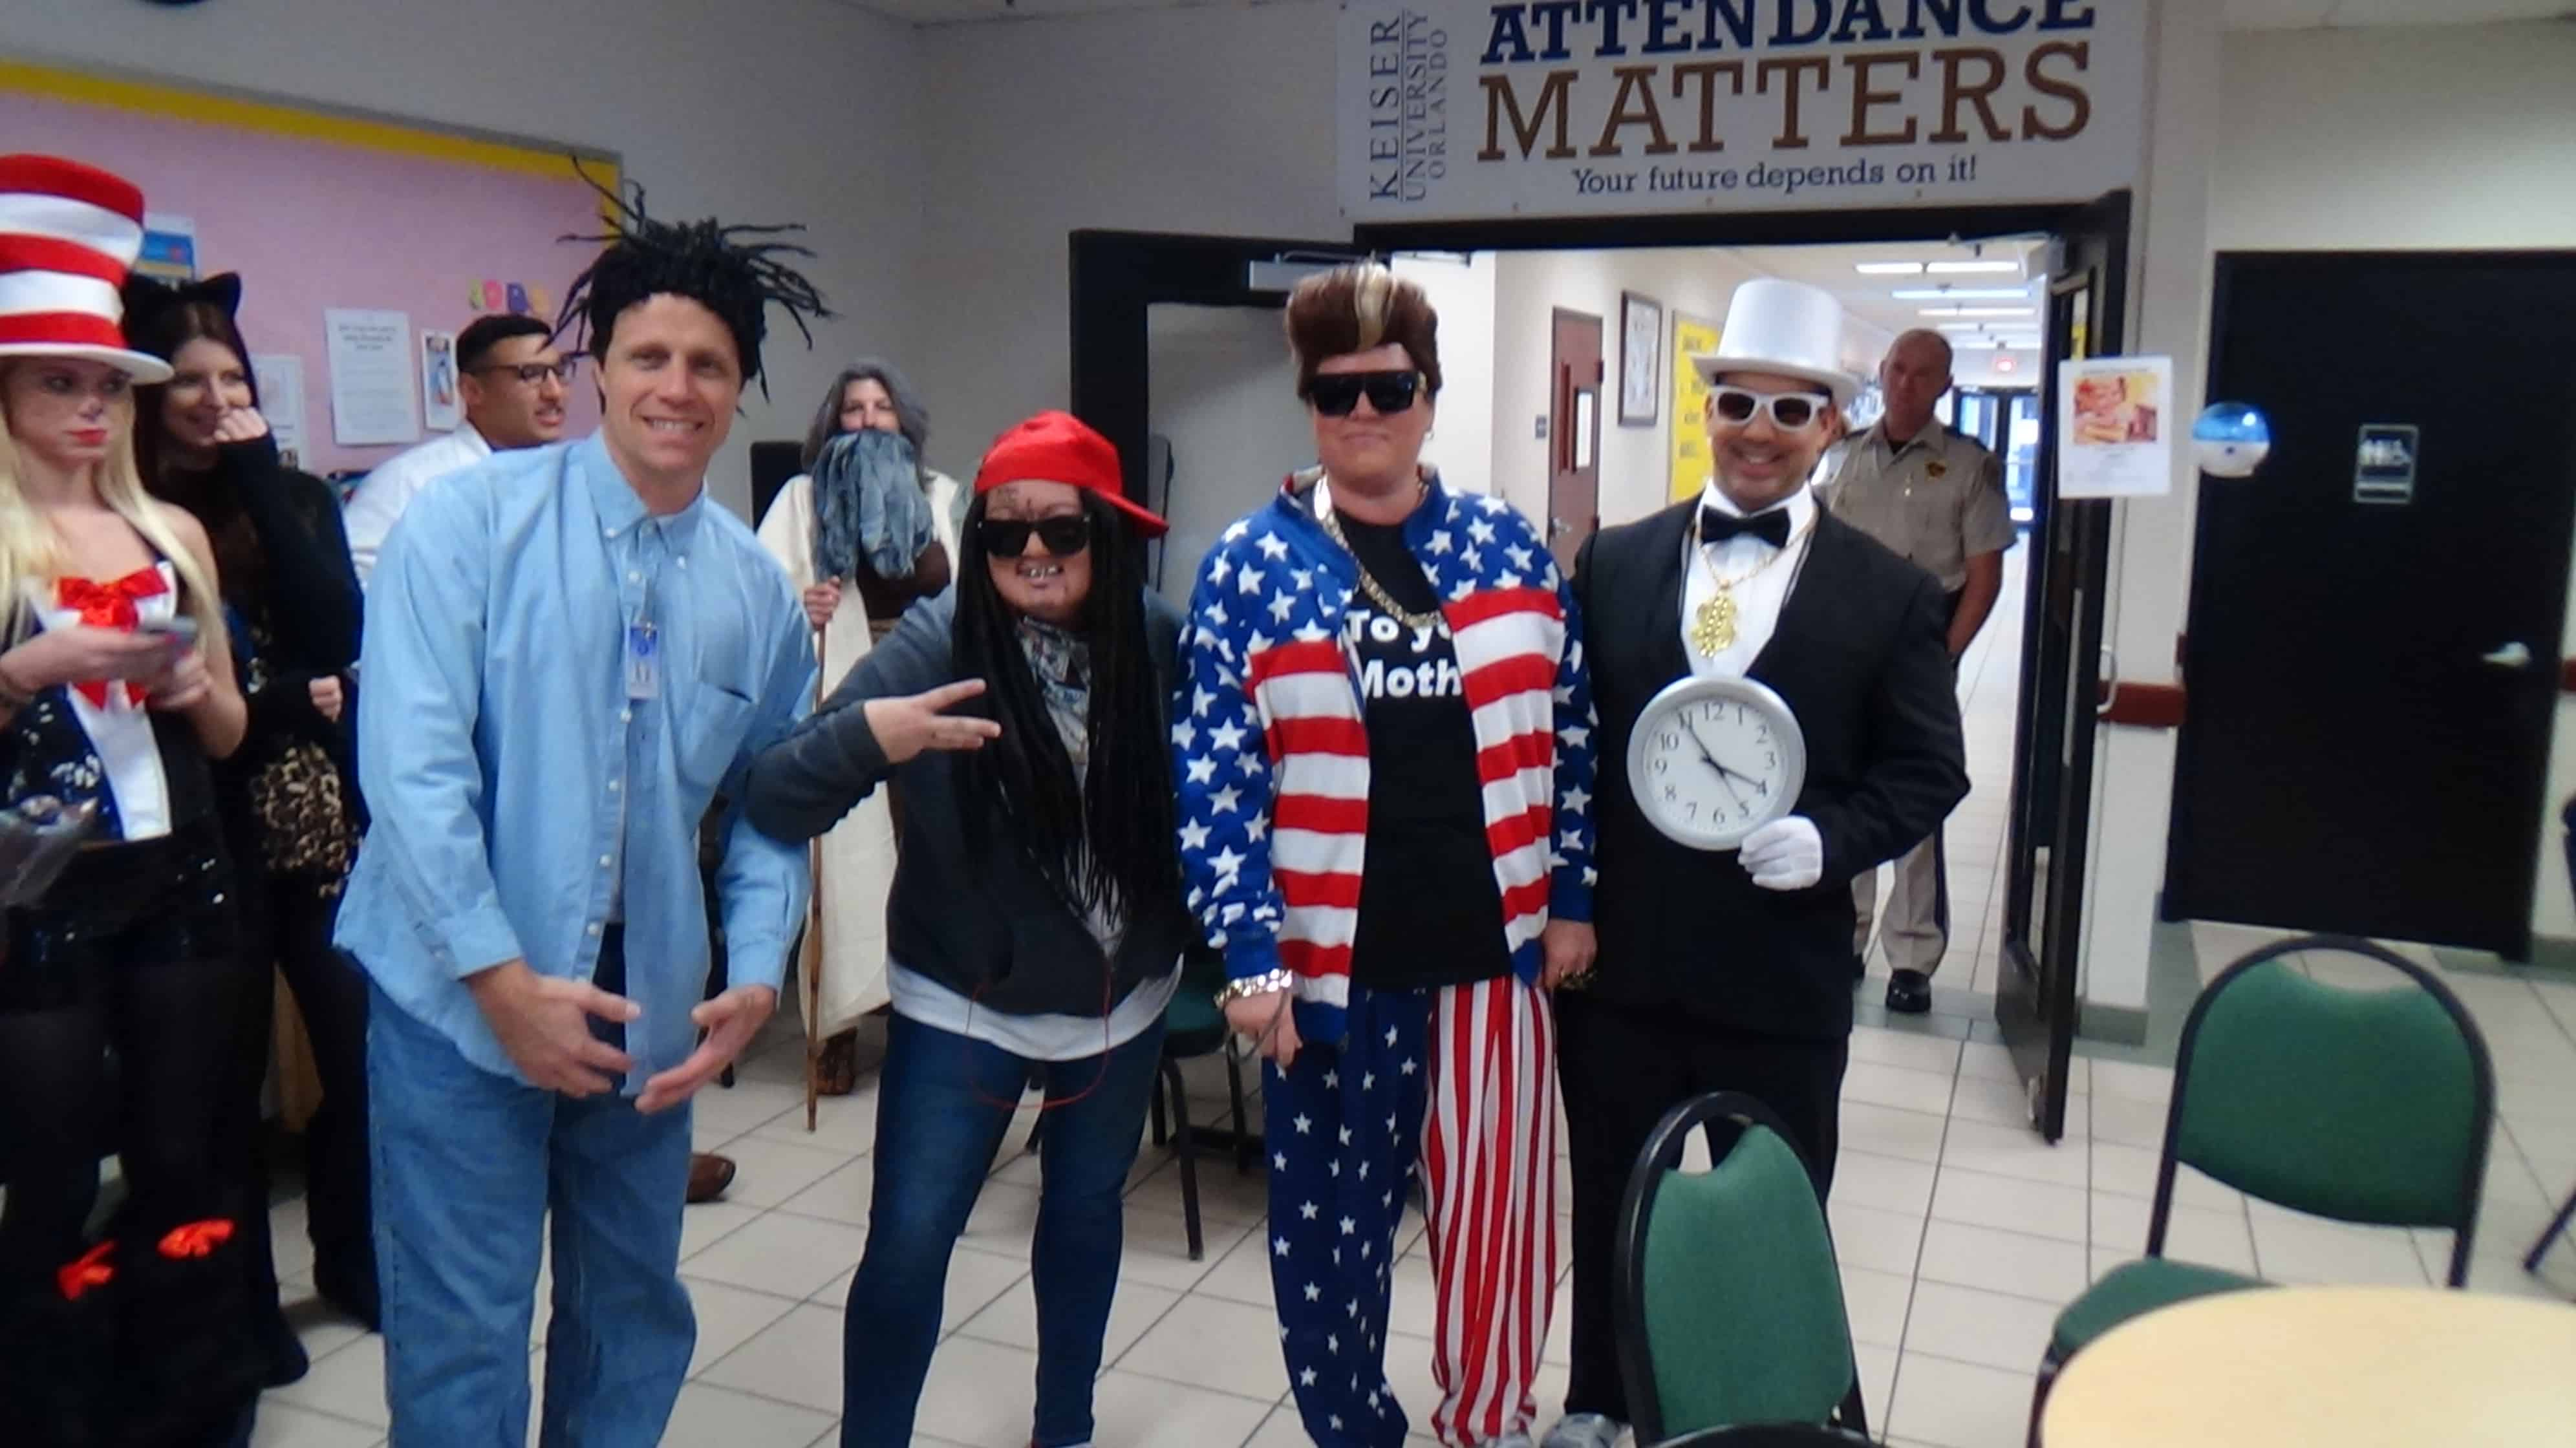 orlando's sga holds a costume contest - keiser university